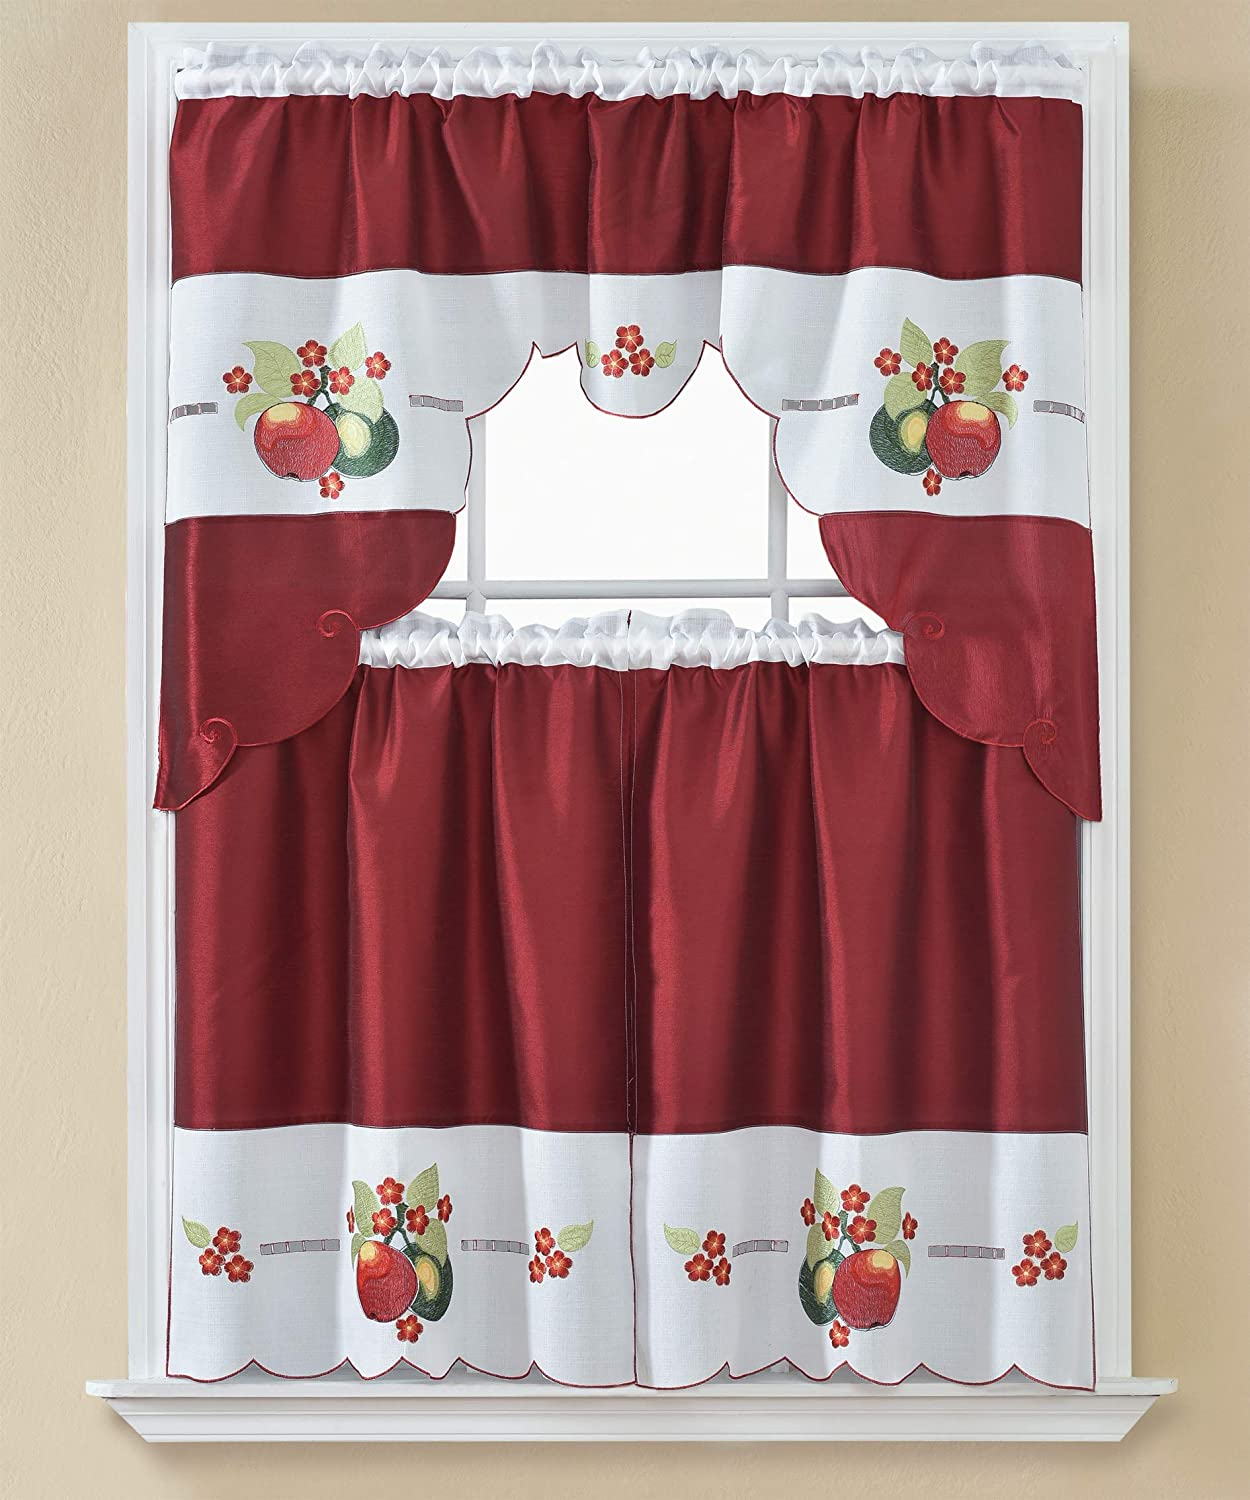 American Linen 3 Piece Embroidered Window Curtain Set, Valance and Tiers, with Embroidery (Red)